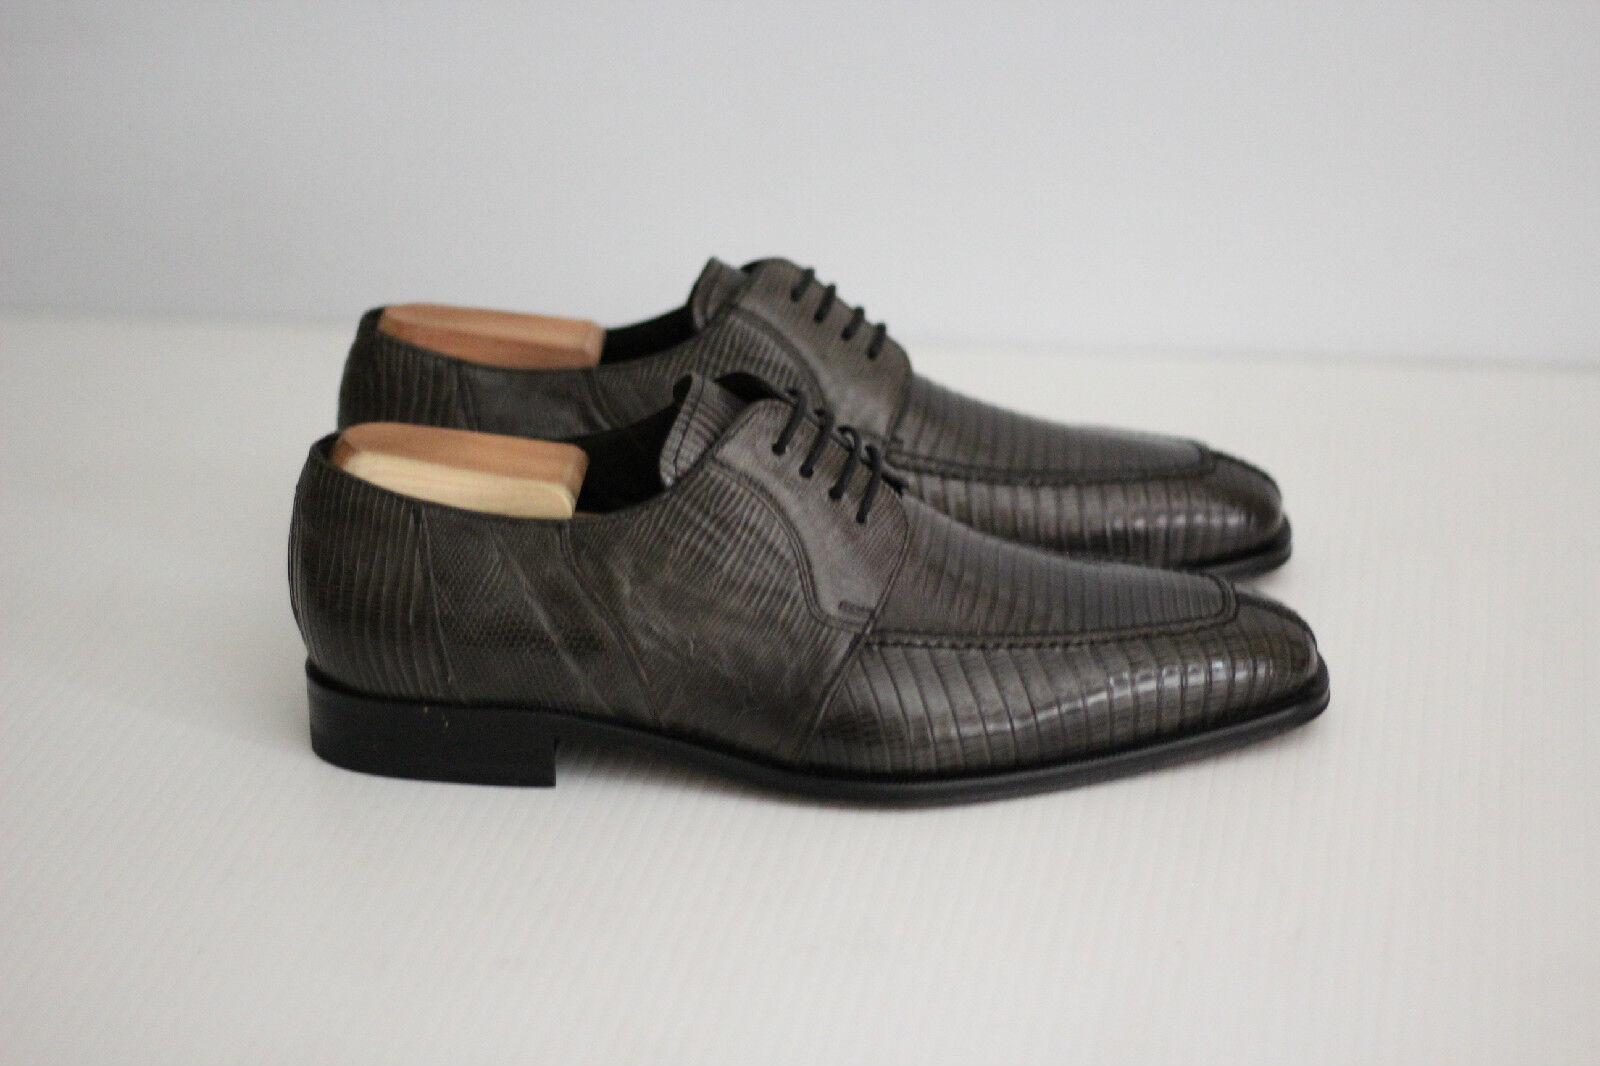 NEW Mezlan Genuine Lizard Oxford - Grey Leather - Size 8.5 M  (B28)